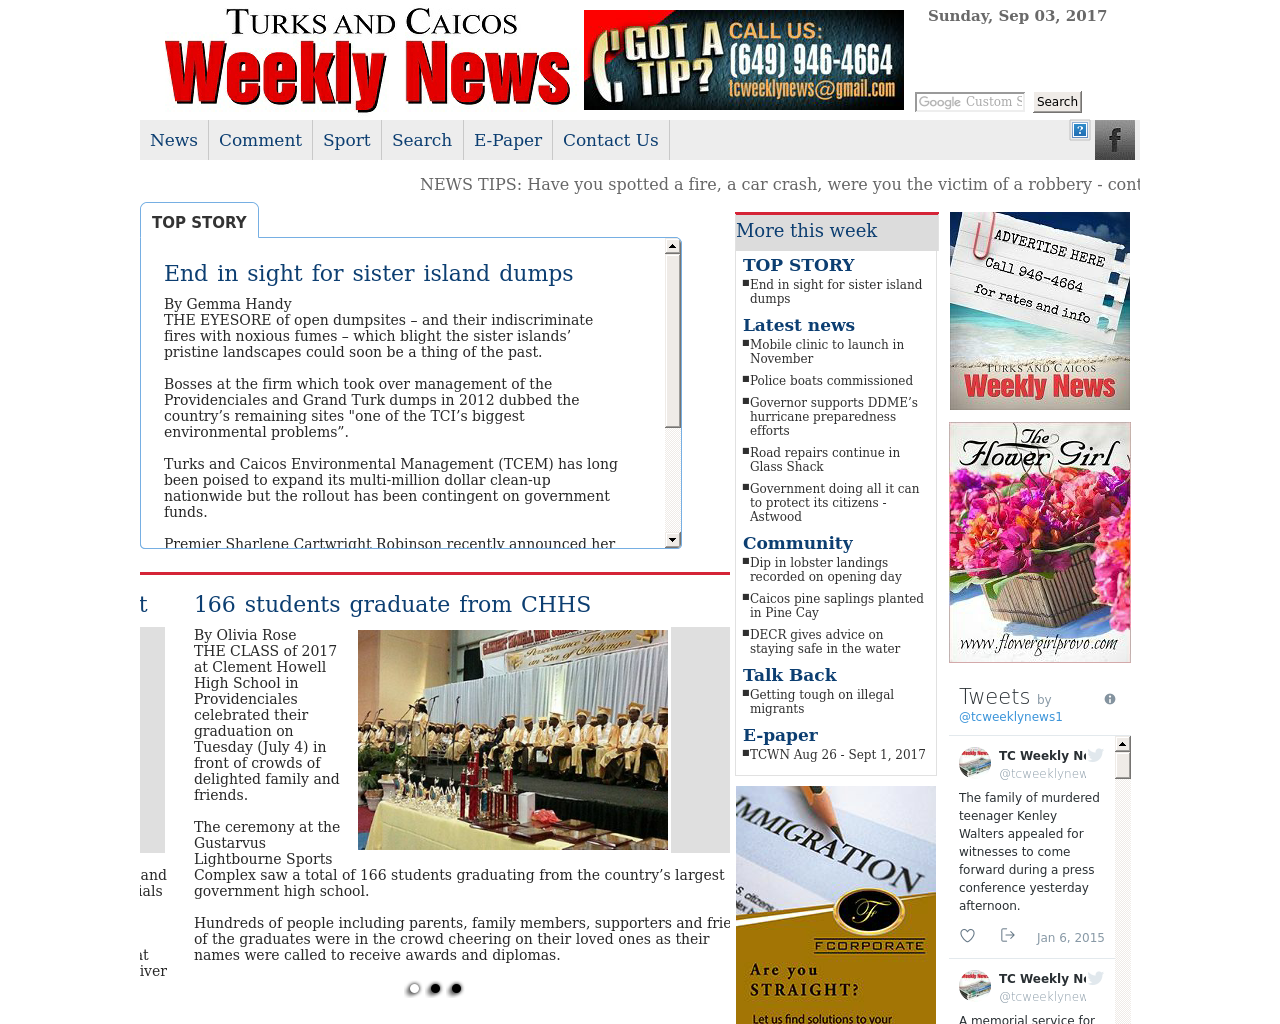 TURKS-AND-CAICOS-Weekly-News-Advertising-Reviews-Pricing